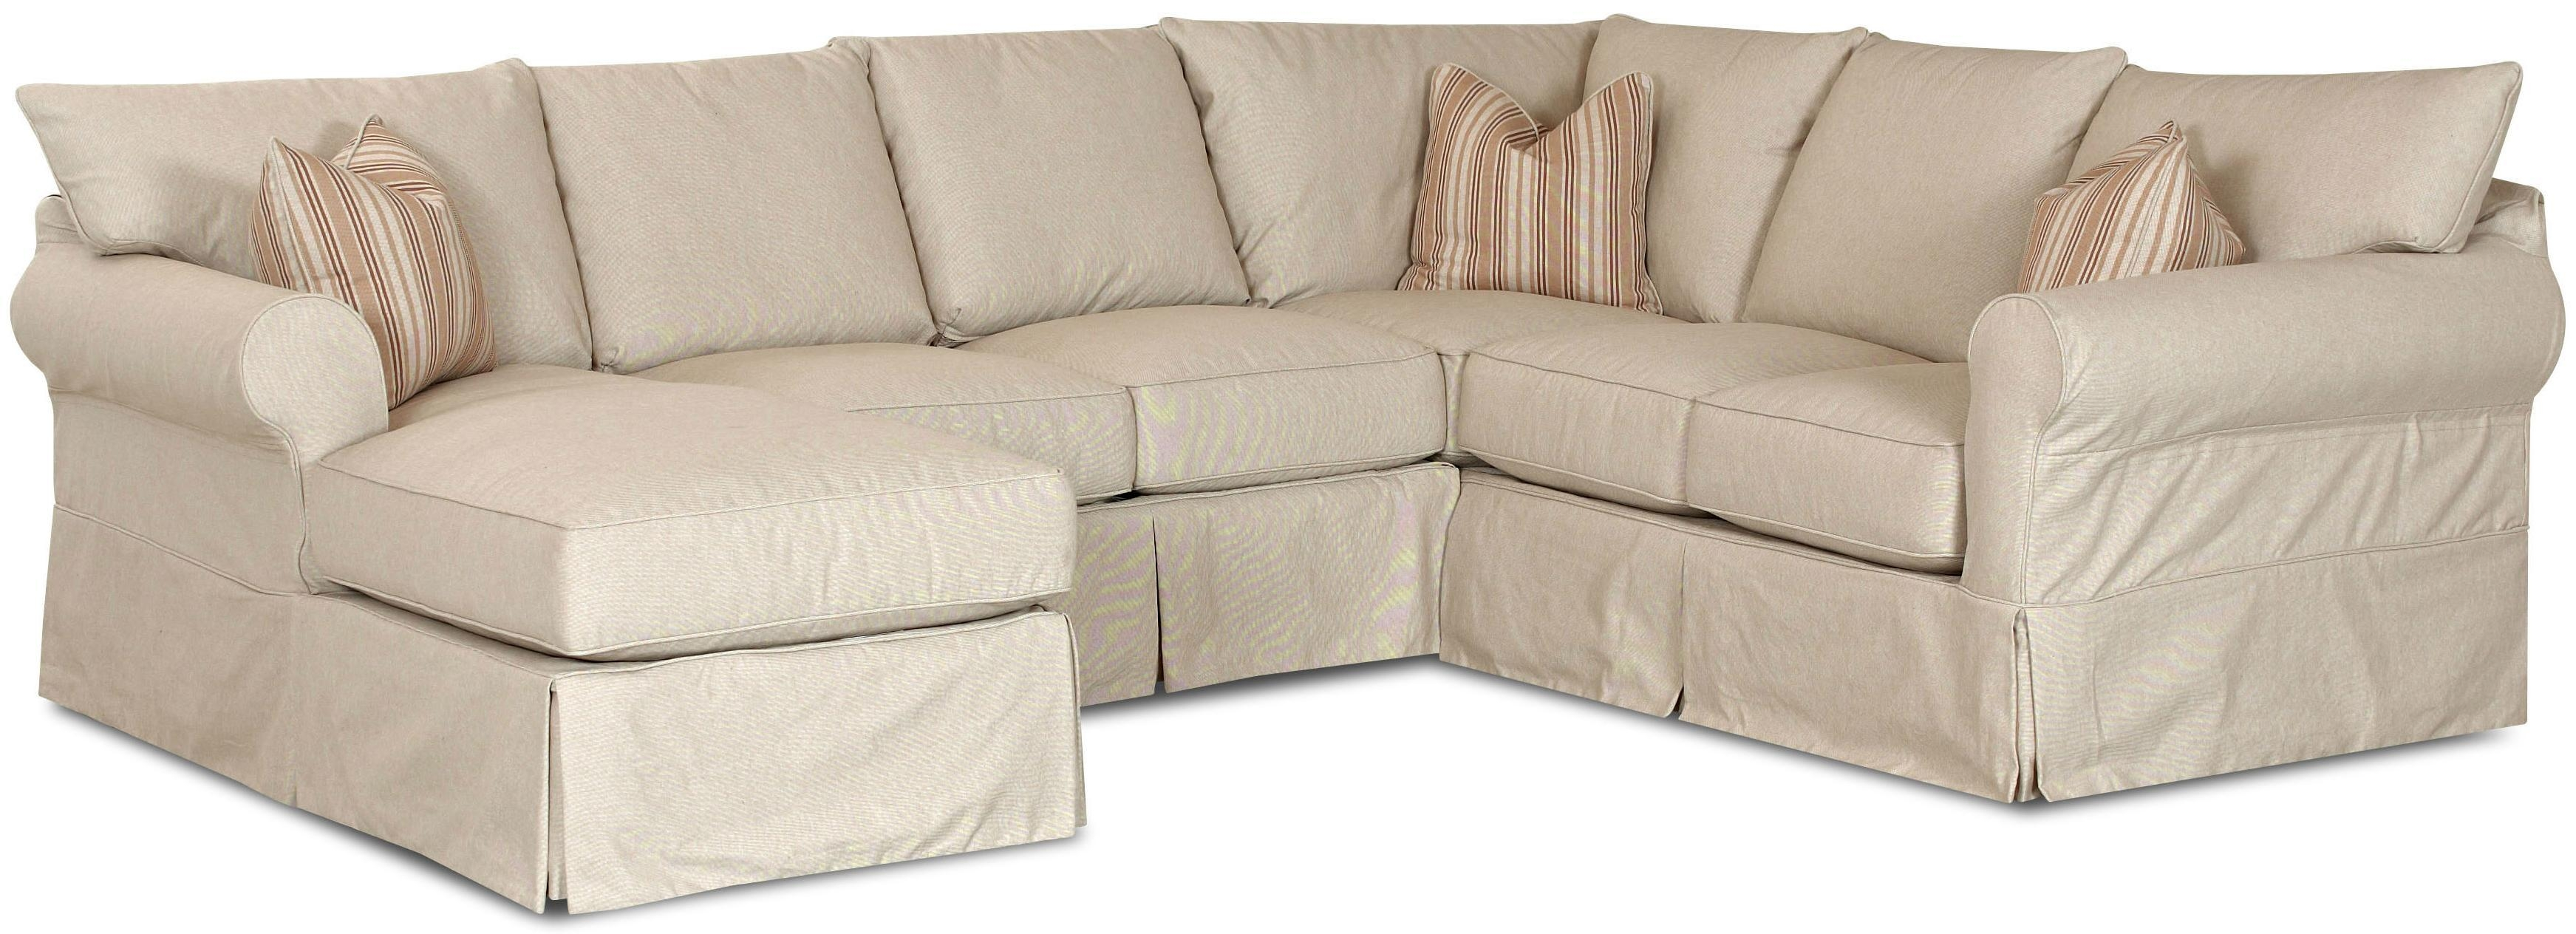 Inspirations: Interesting Furniture Sectional Sofa Slipcovers For In Chaise Sectional Slipcover (View 4 of 15)